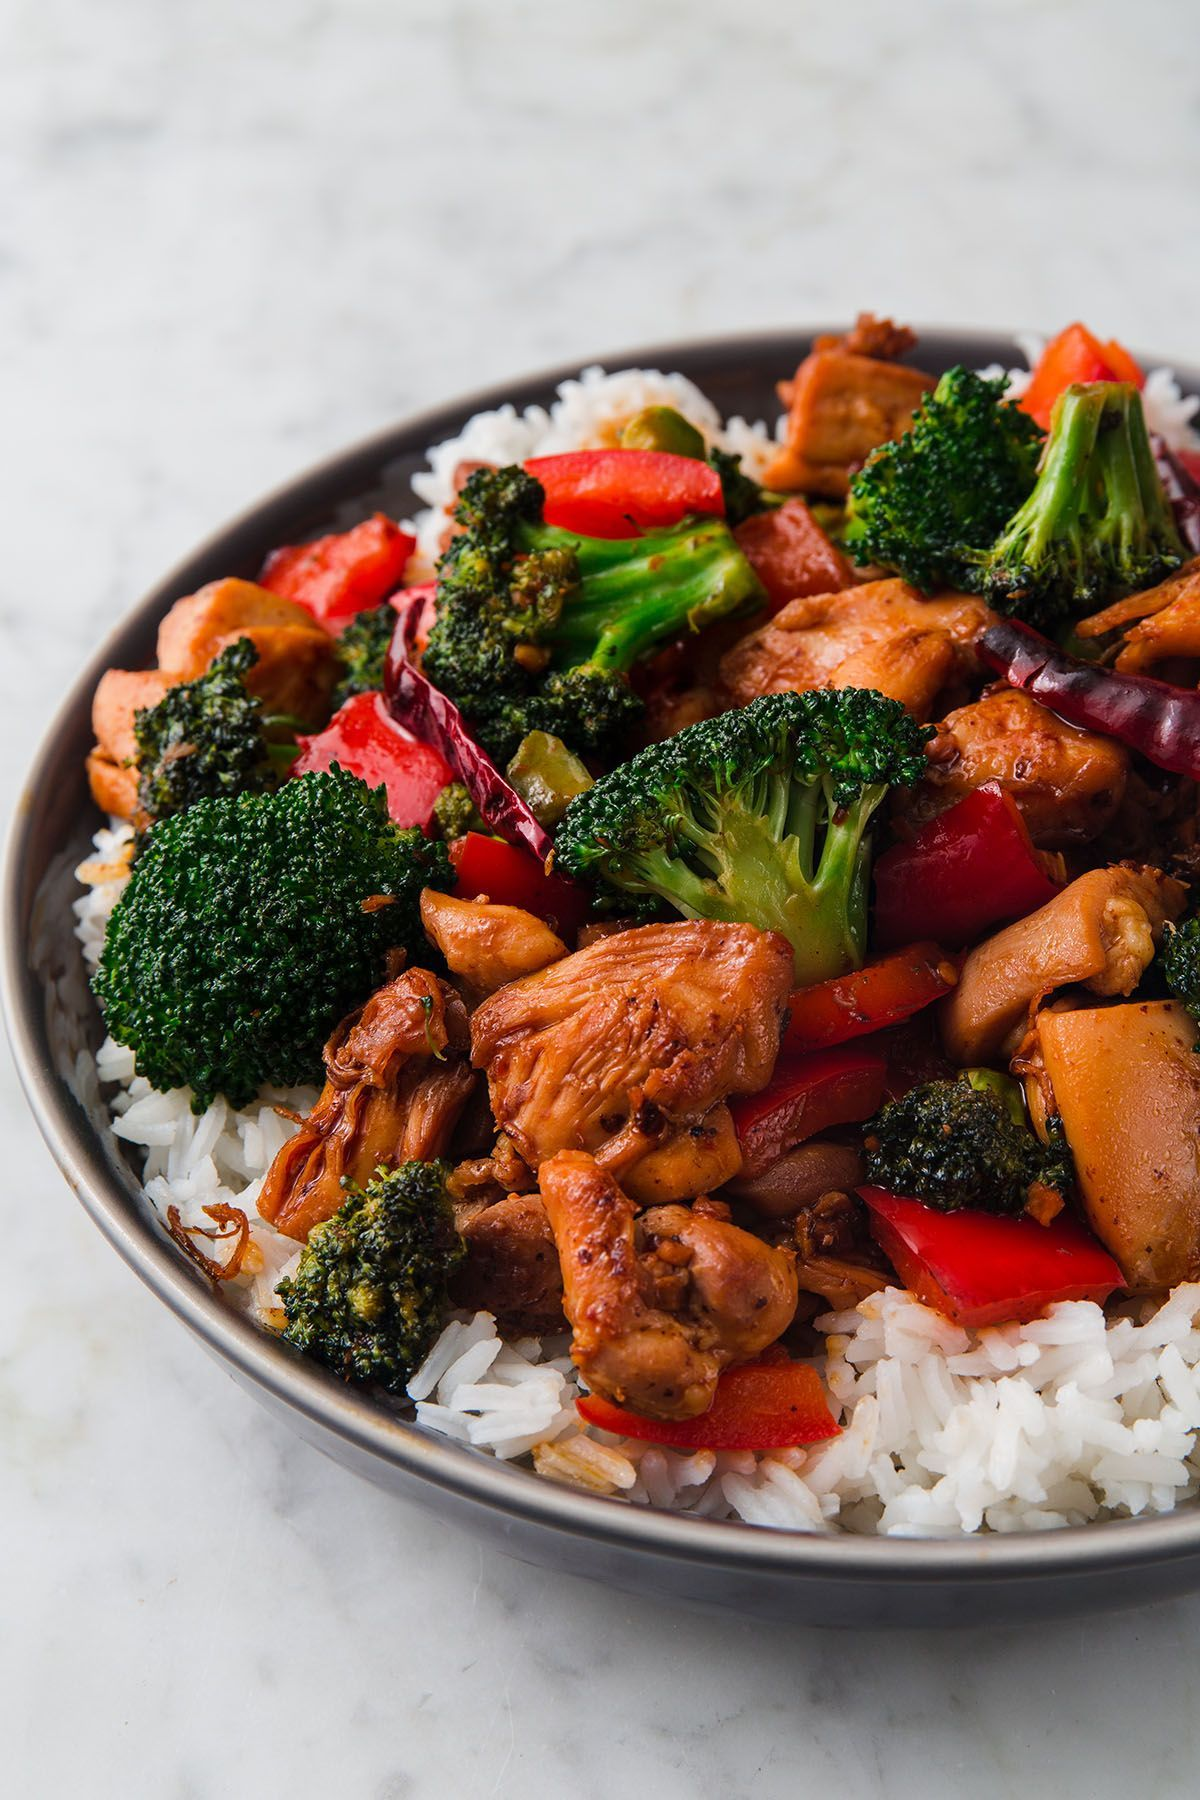 Easy Chinese Food Recipes That Will Have You Skipping ...